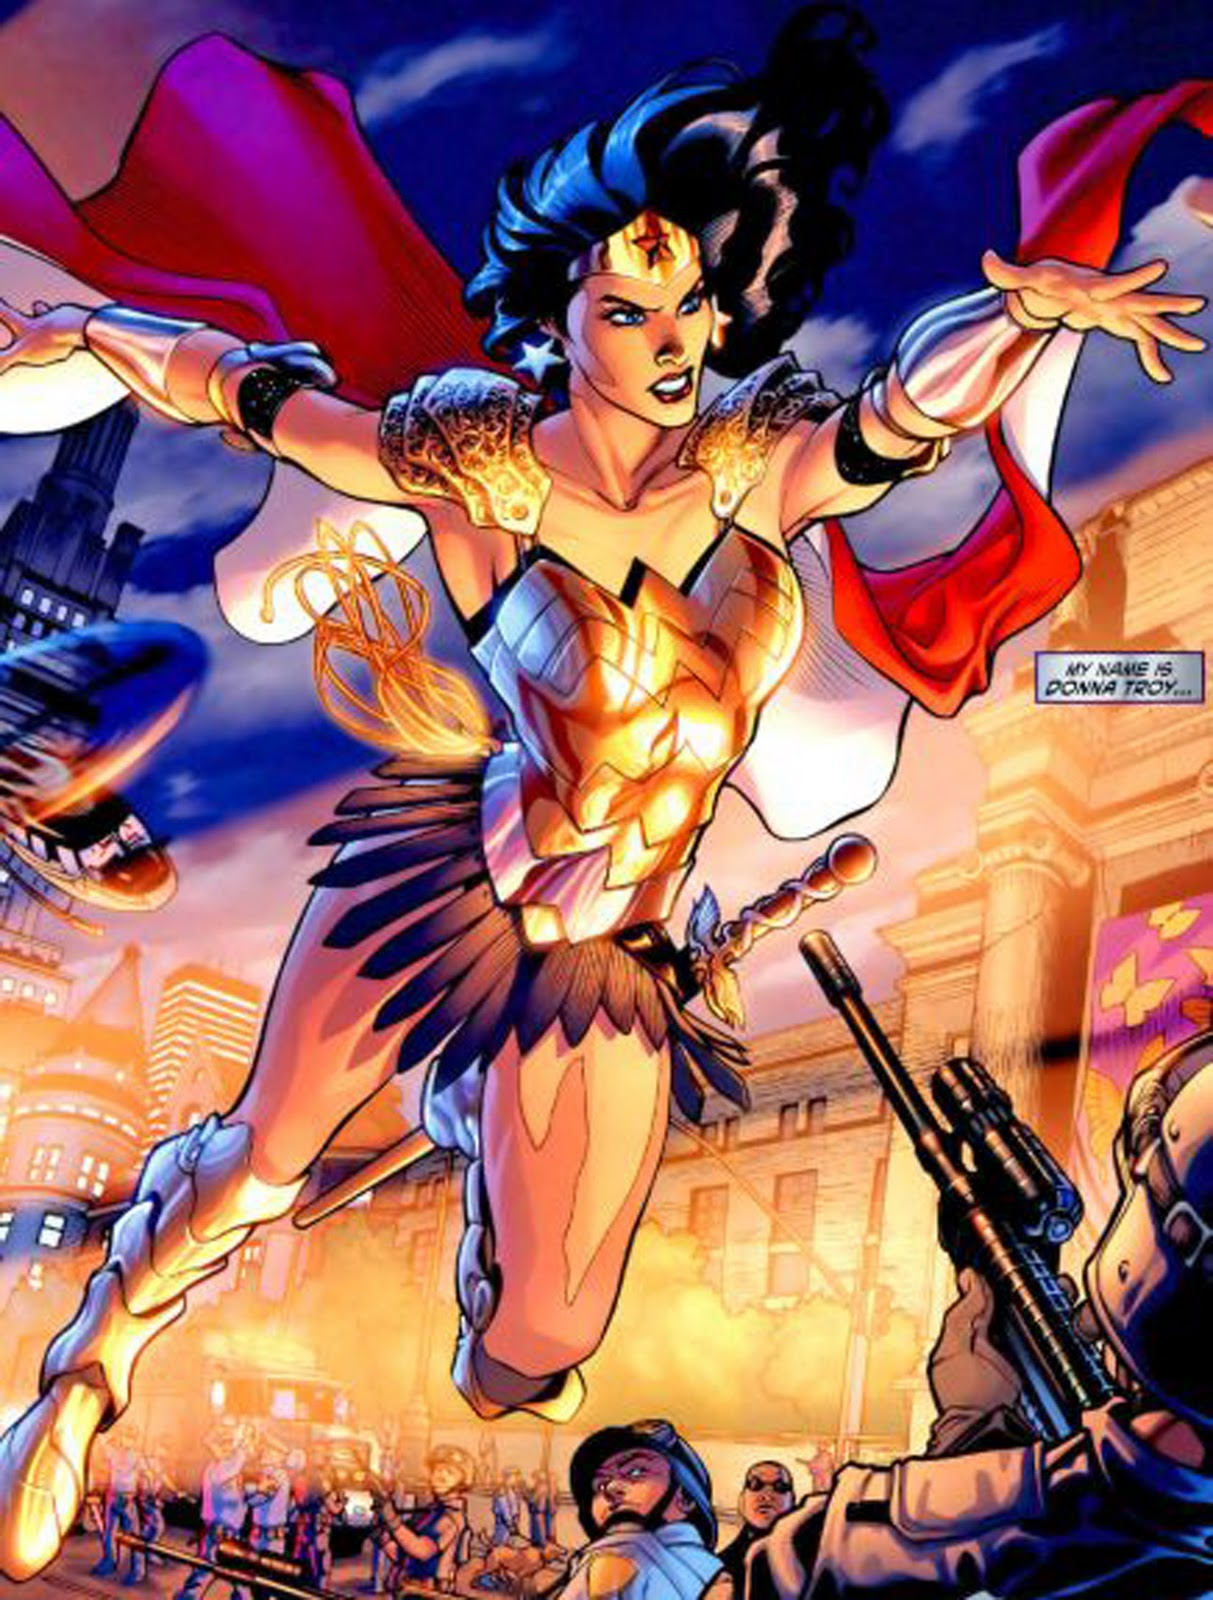 http://2.bp.blogspot.com/-y1pdIiJcz8U/TwLJMCUVv1I/AAAAAAAAC-A/FPf1-gghlBE/s1600/ww+wonder+woman+flying+golden+armor+warrior+fantasy+wallpaper+new+52+dc+comicssupergirl+donna+troy+poster+art+by+terry+dodson.jpg